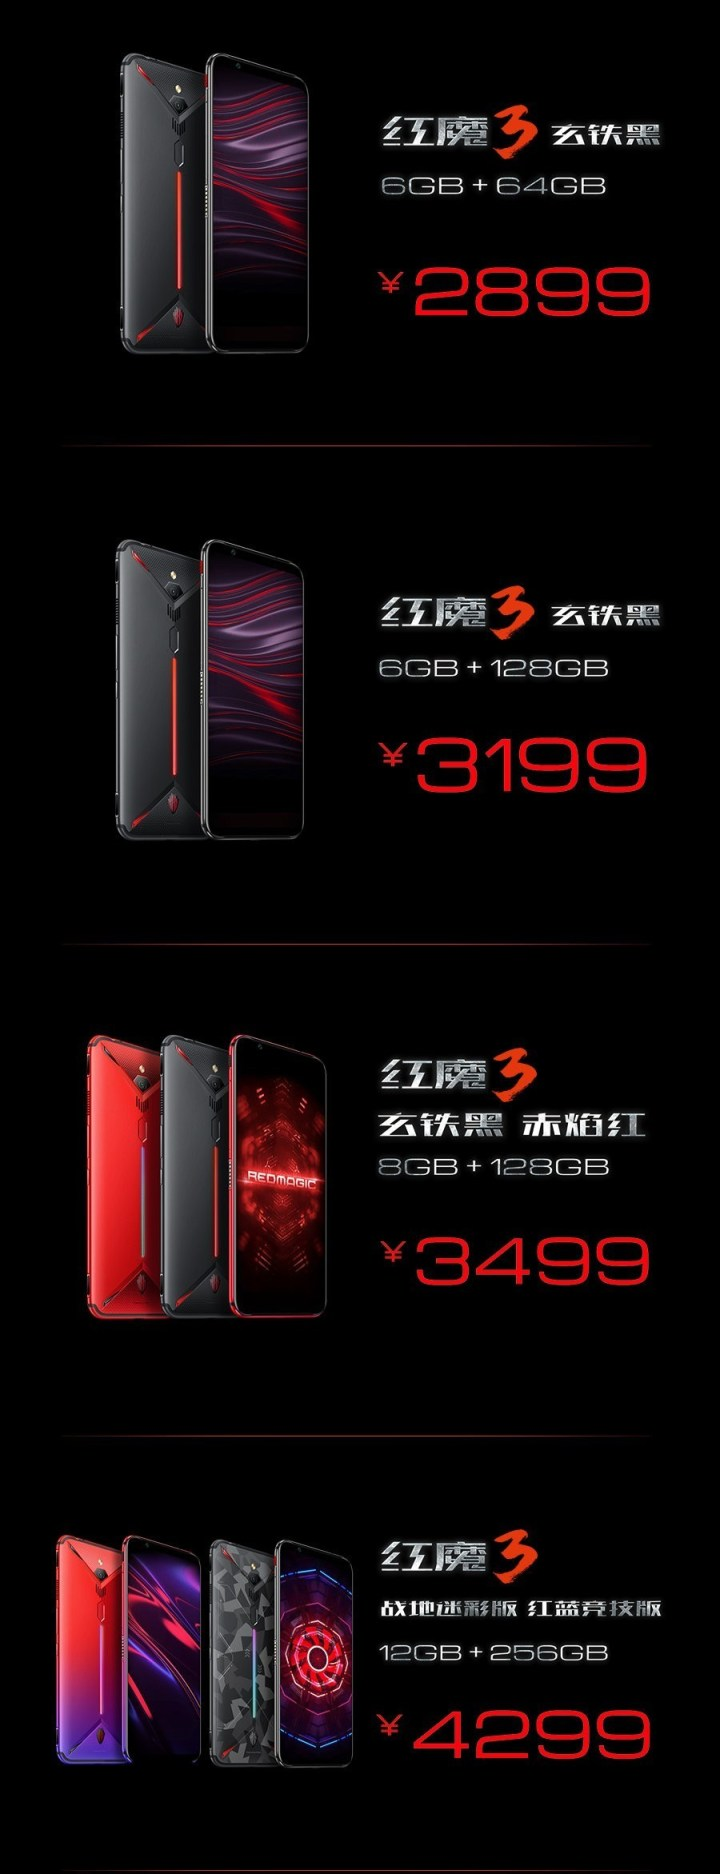 Nubia Red Magic 3 Price and Versions